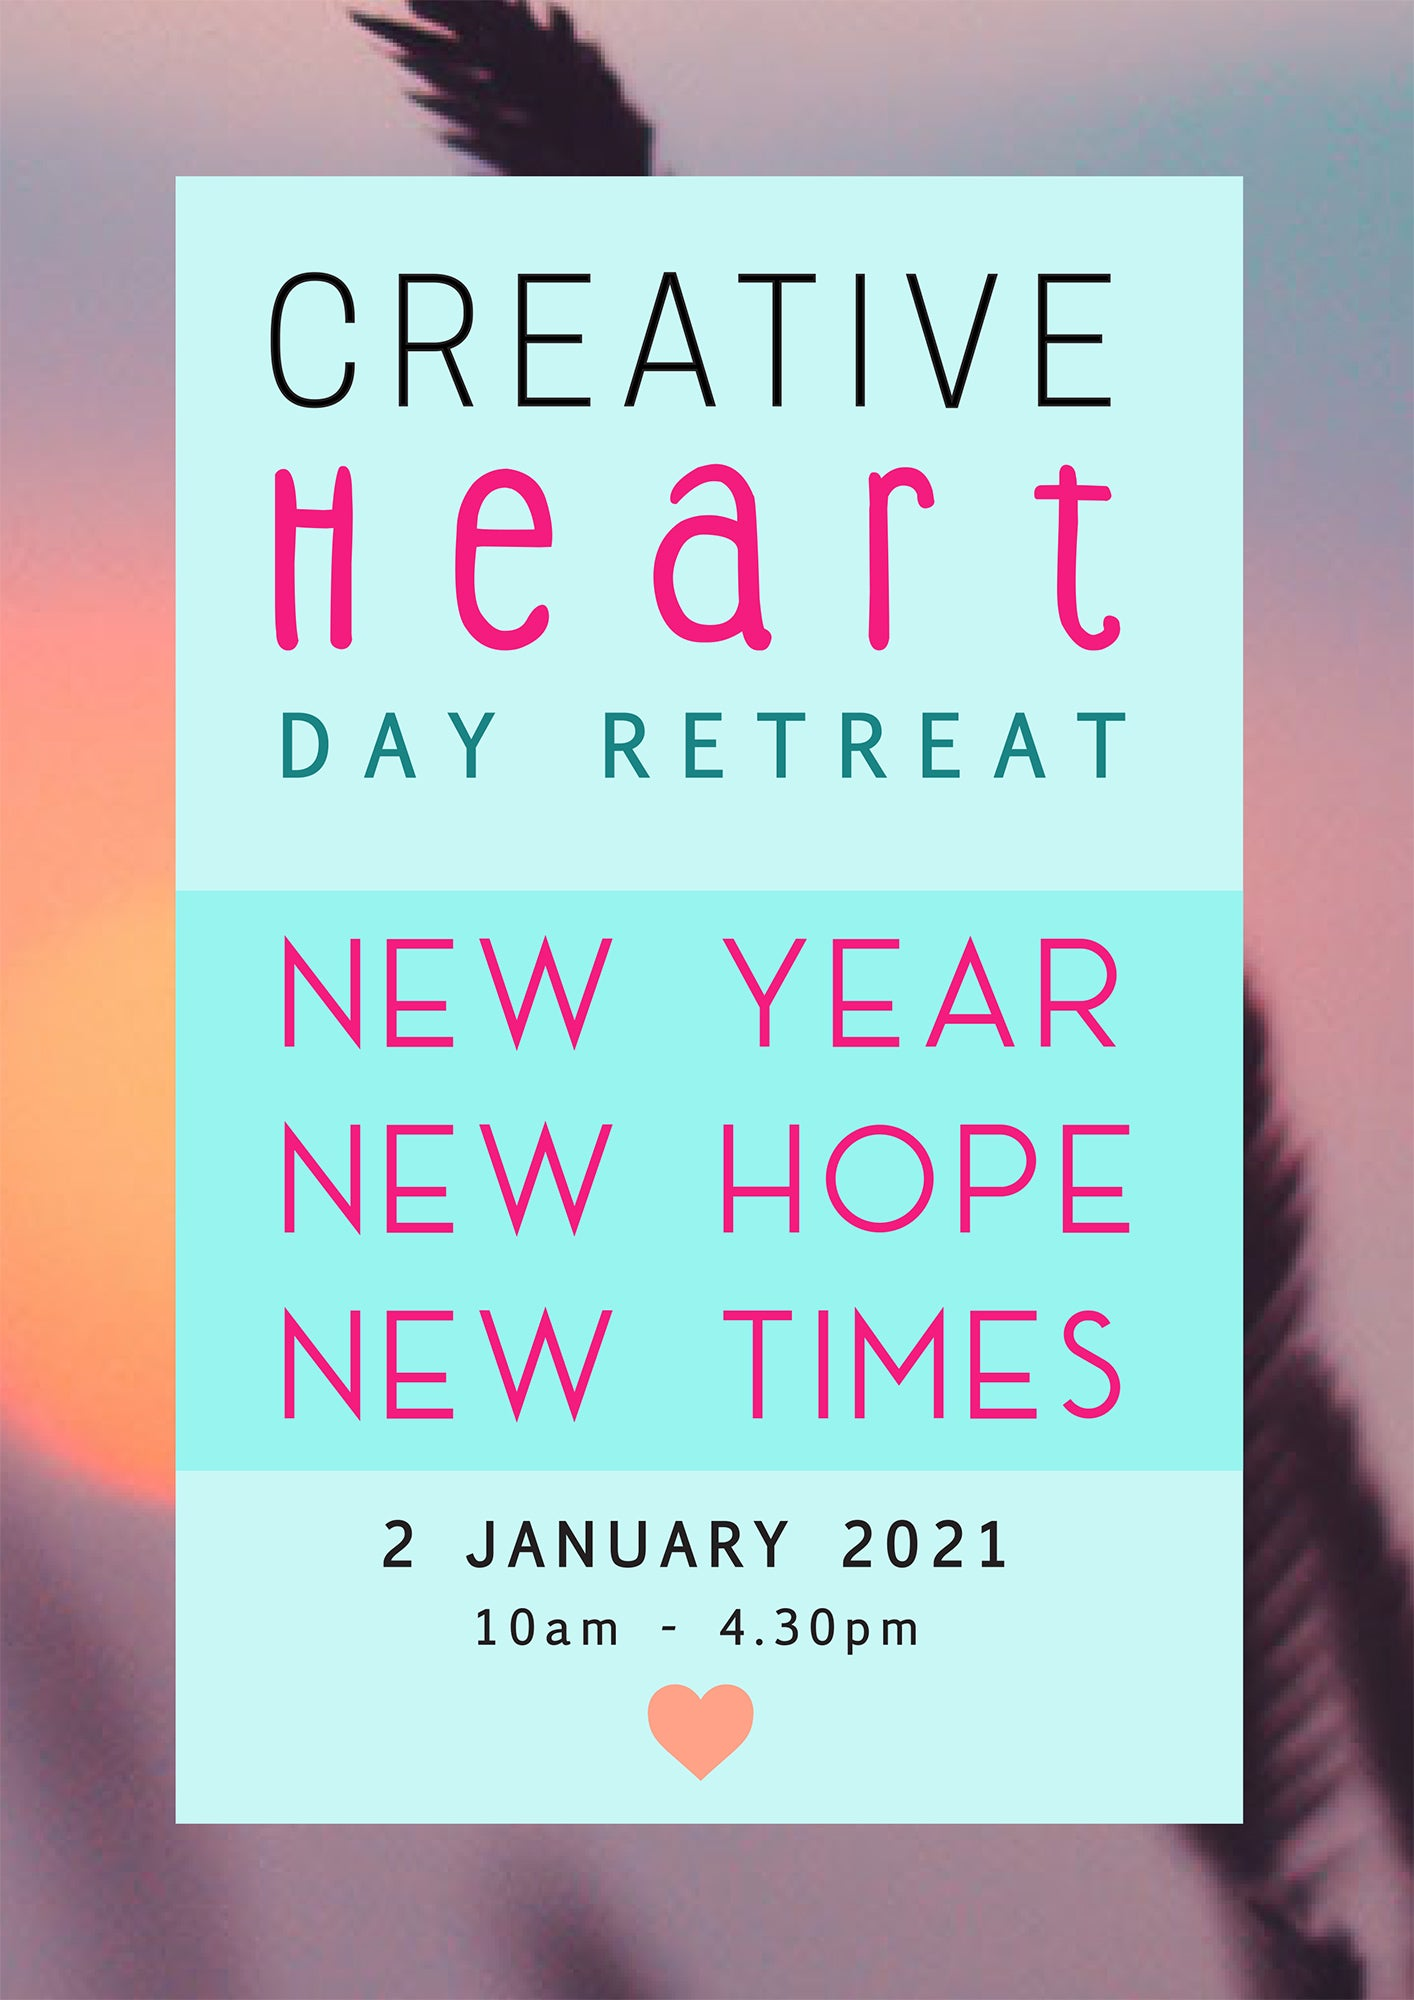 Creative Heart retreat